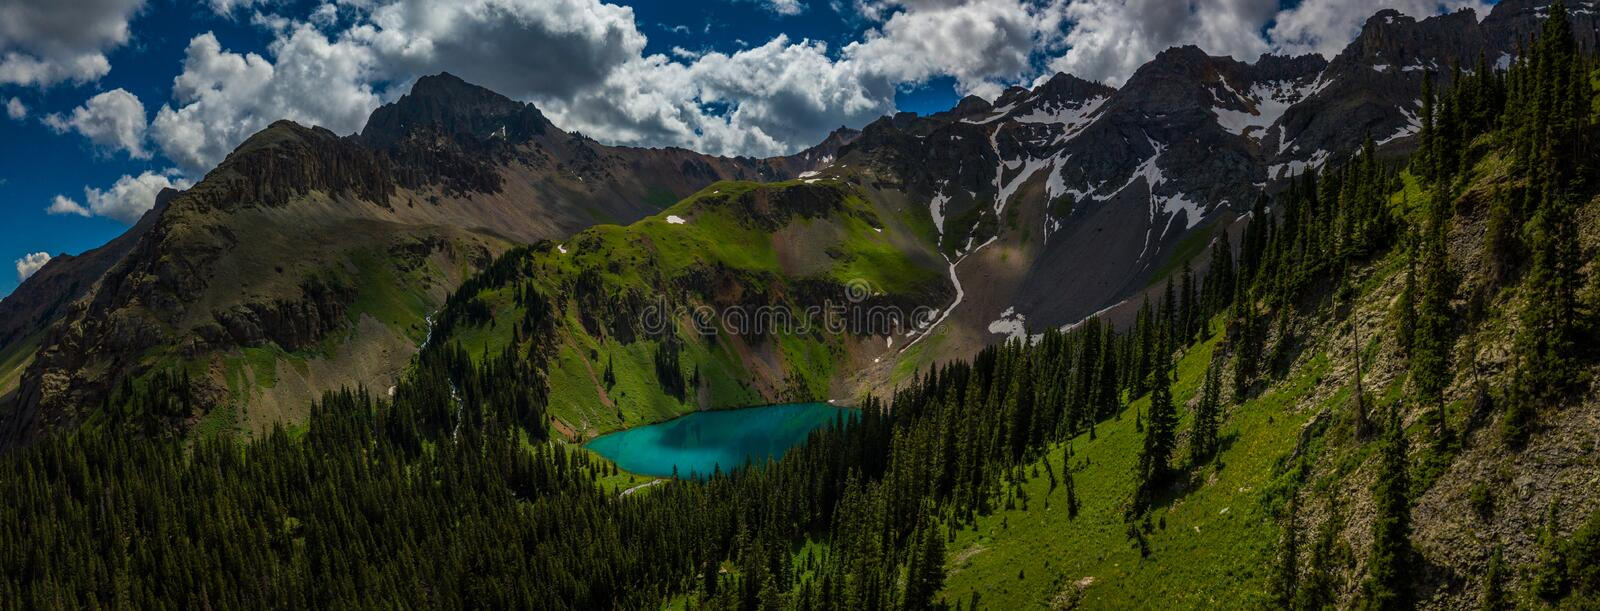 Blue Lake near near Ridgway Colorado with Mountain Sneffels, Dallas Peak and Gilpin Peak in the background stock images